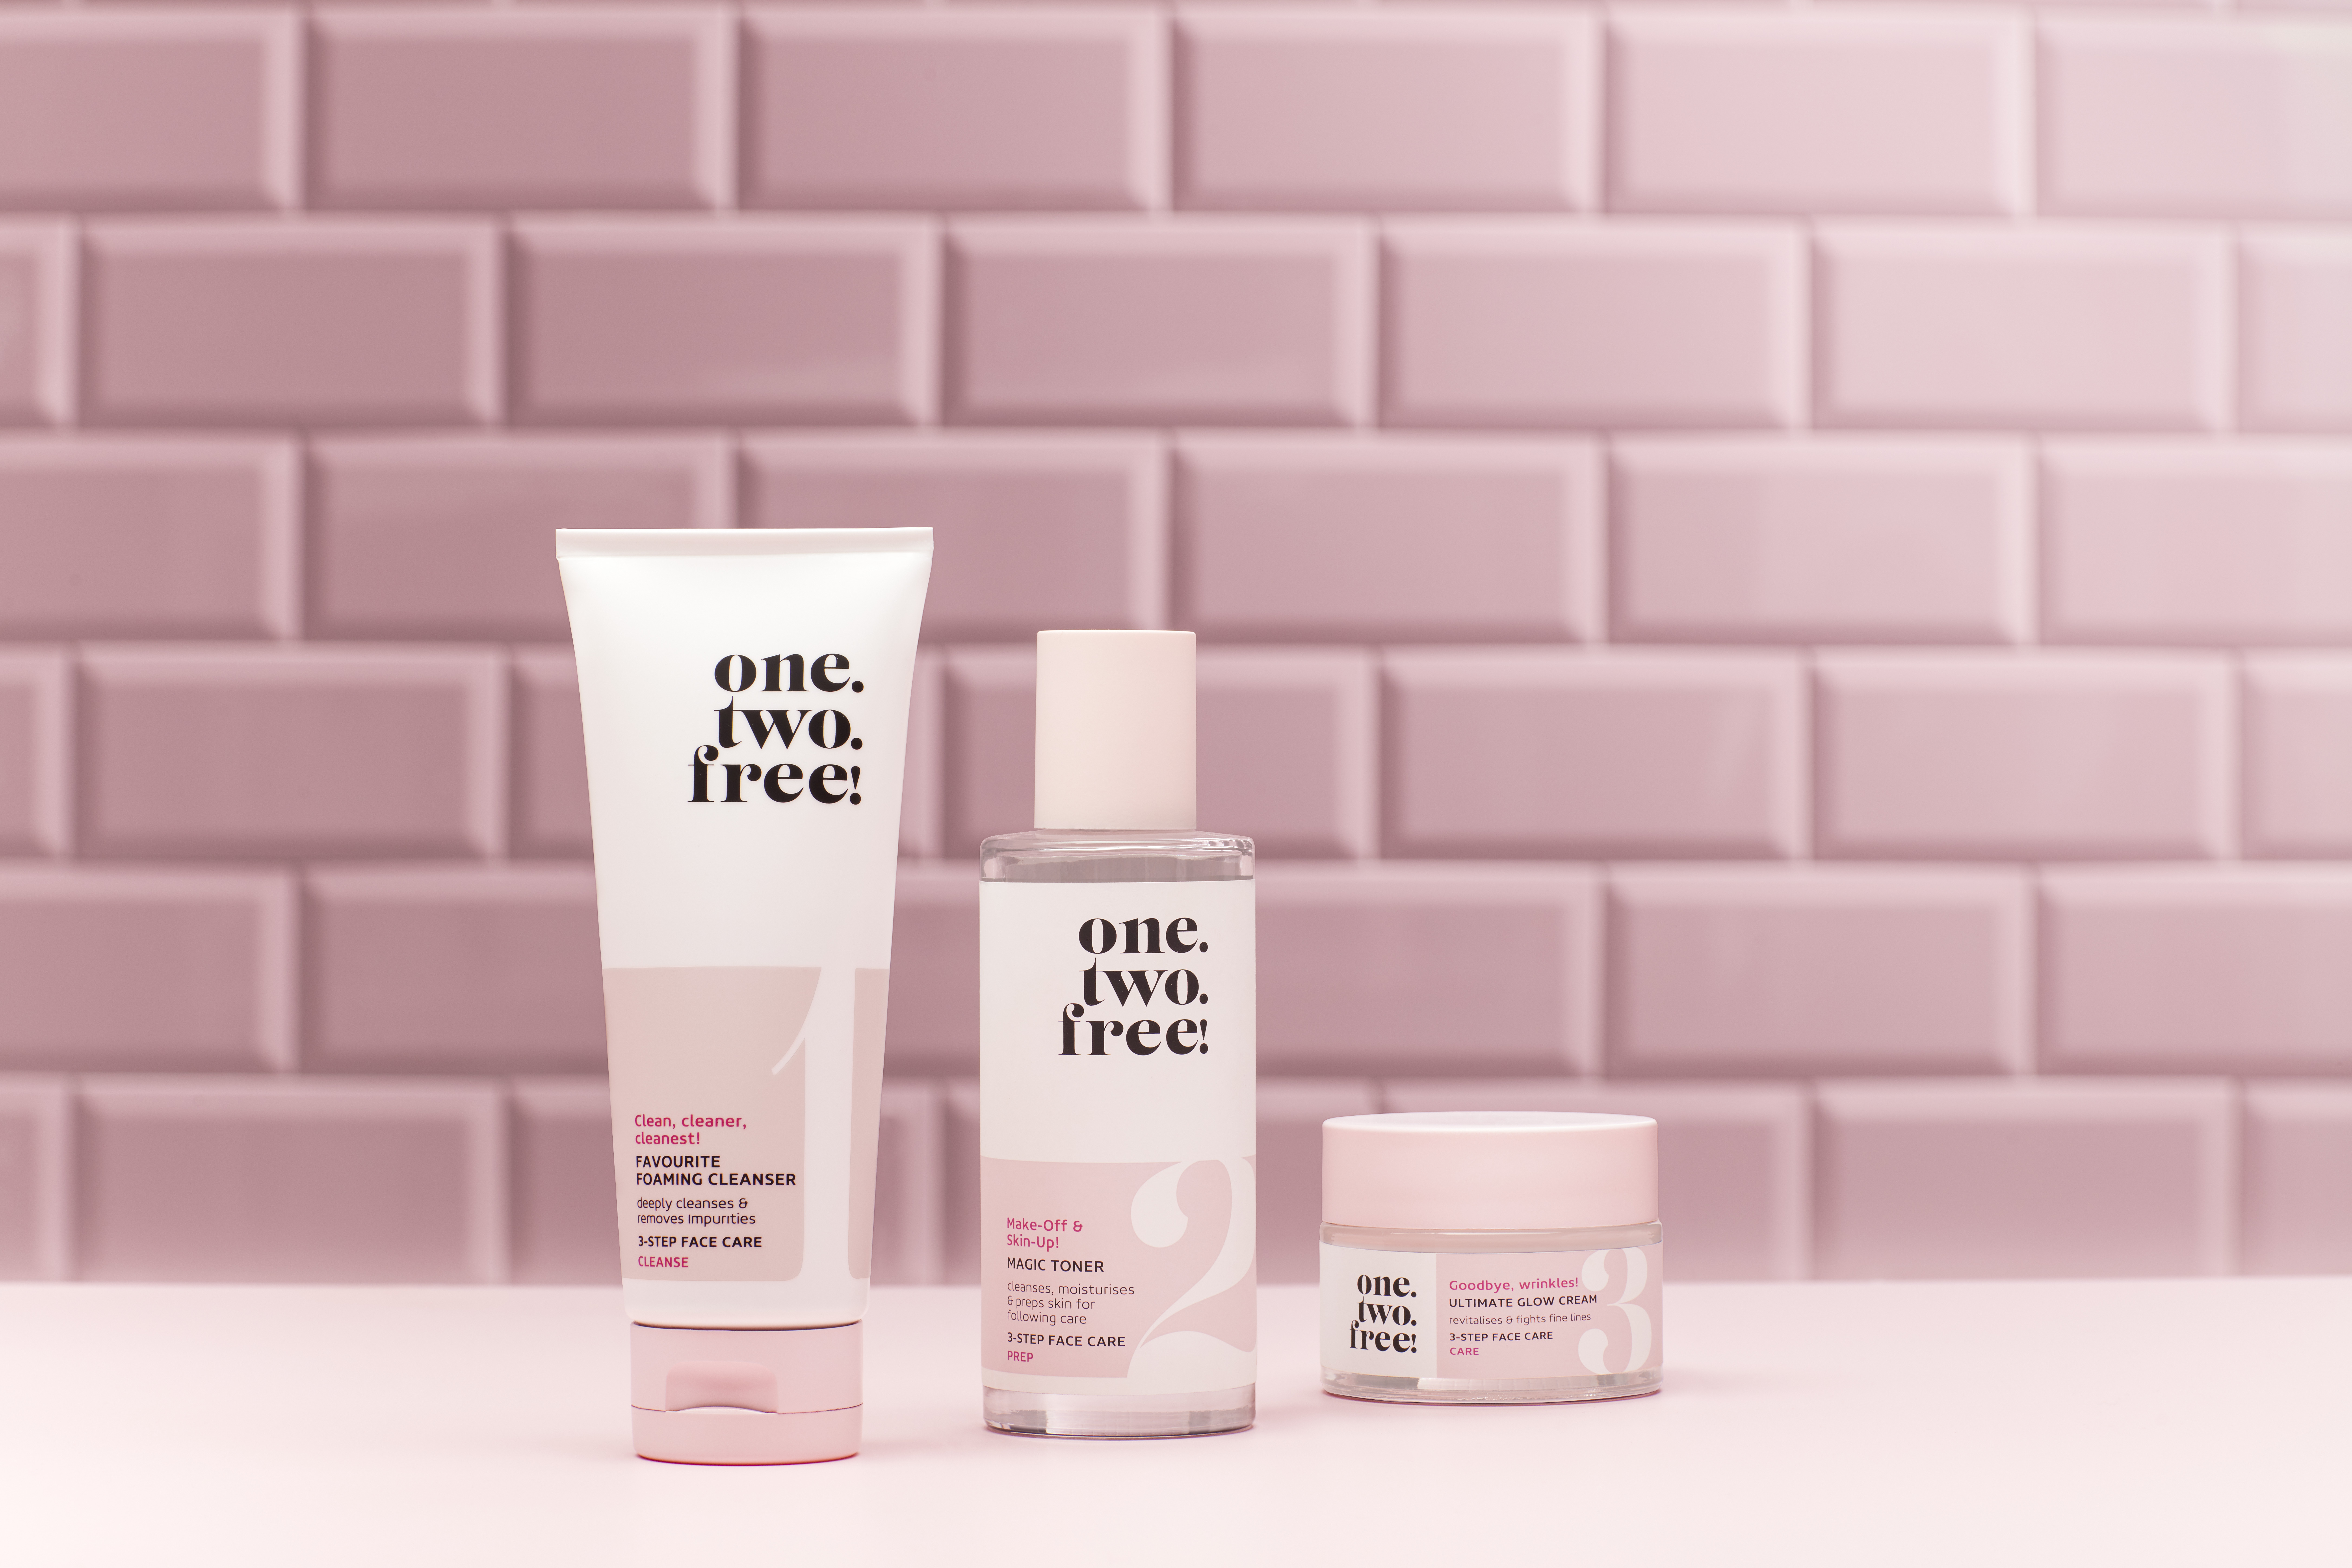 Skincare-product-one-two-free-all-products-pink-tiles-v1-unlimited-Original-File